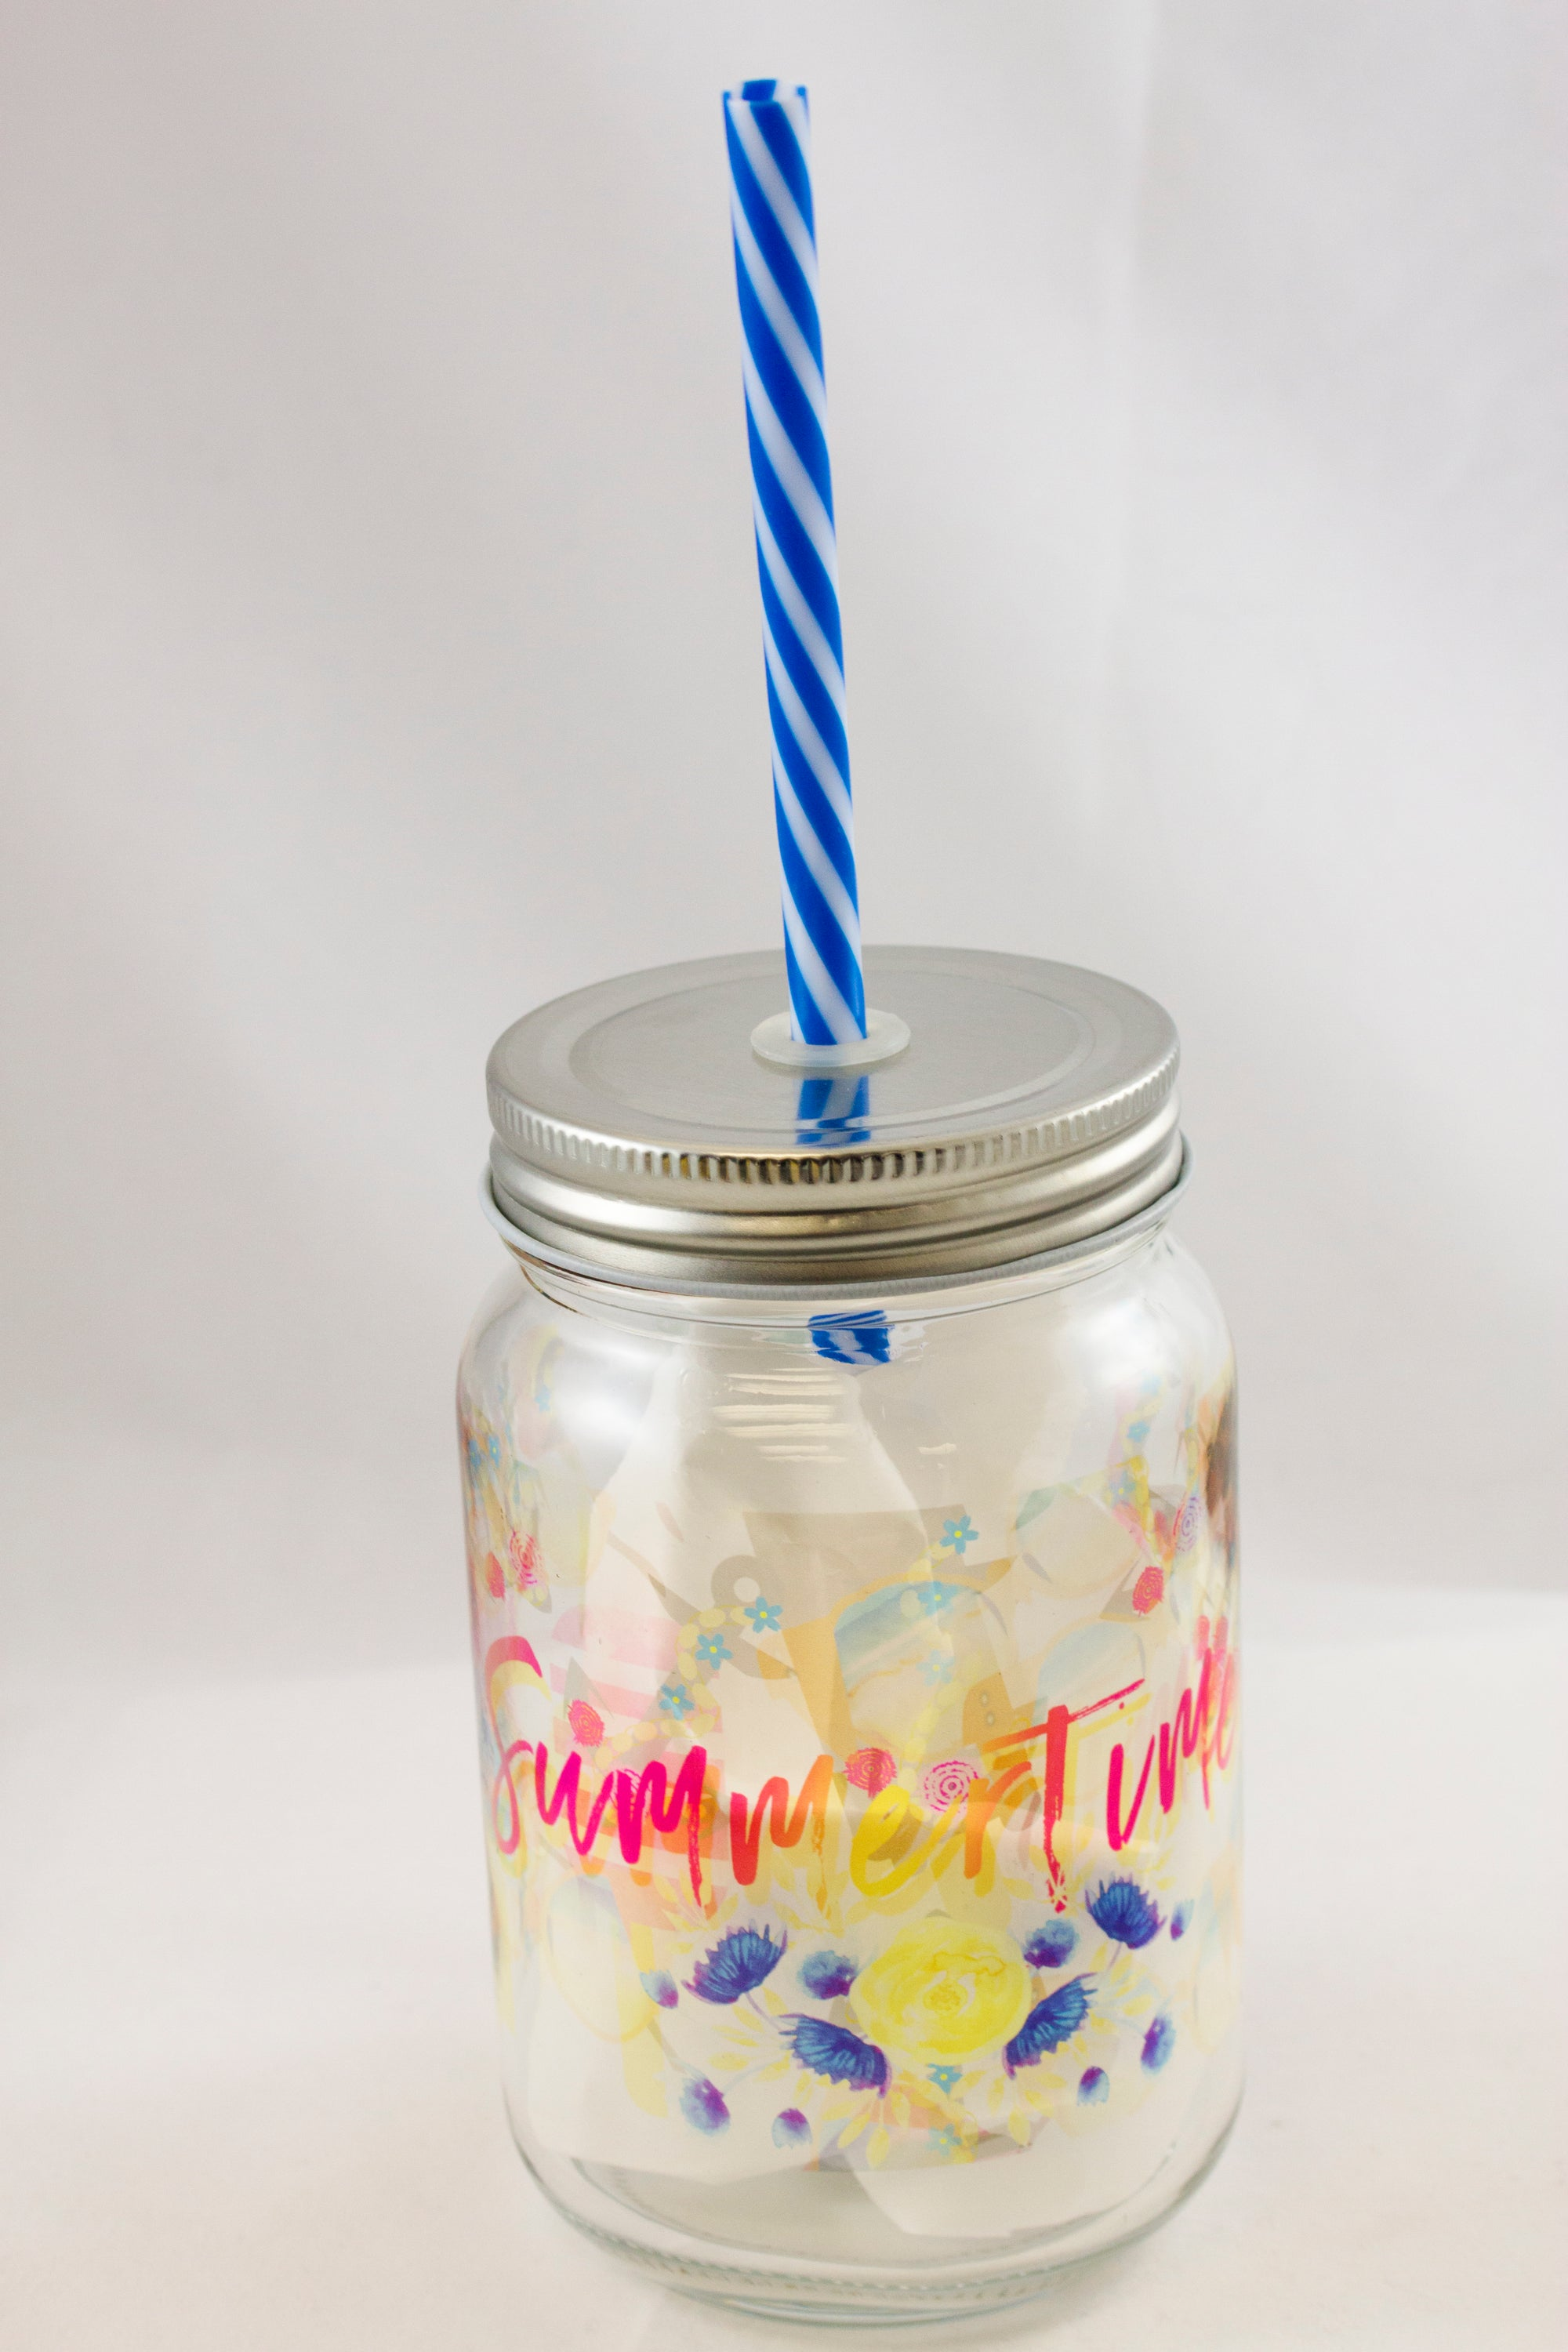 Summertime Mason Jar - Aspireimaginary